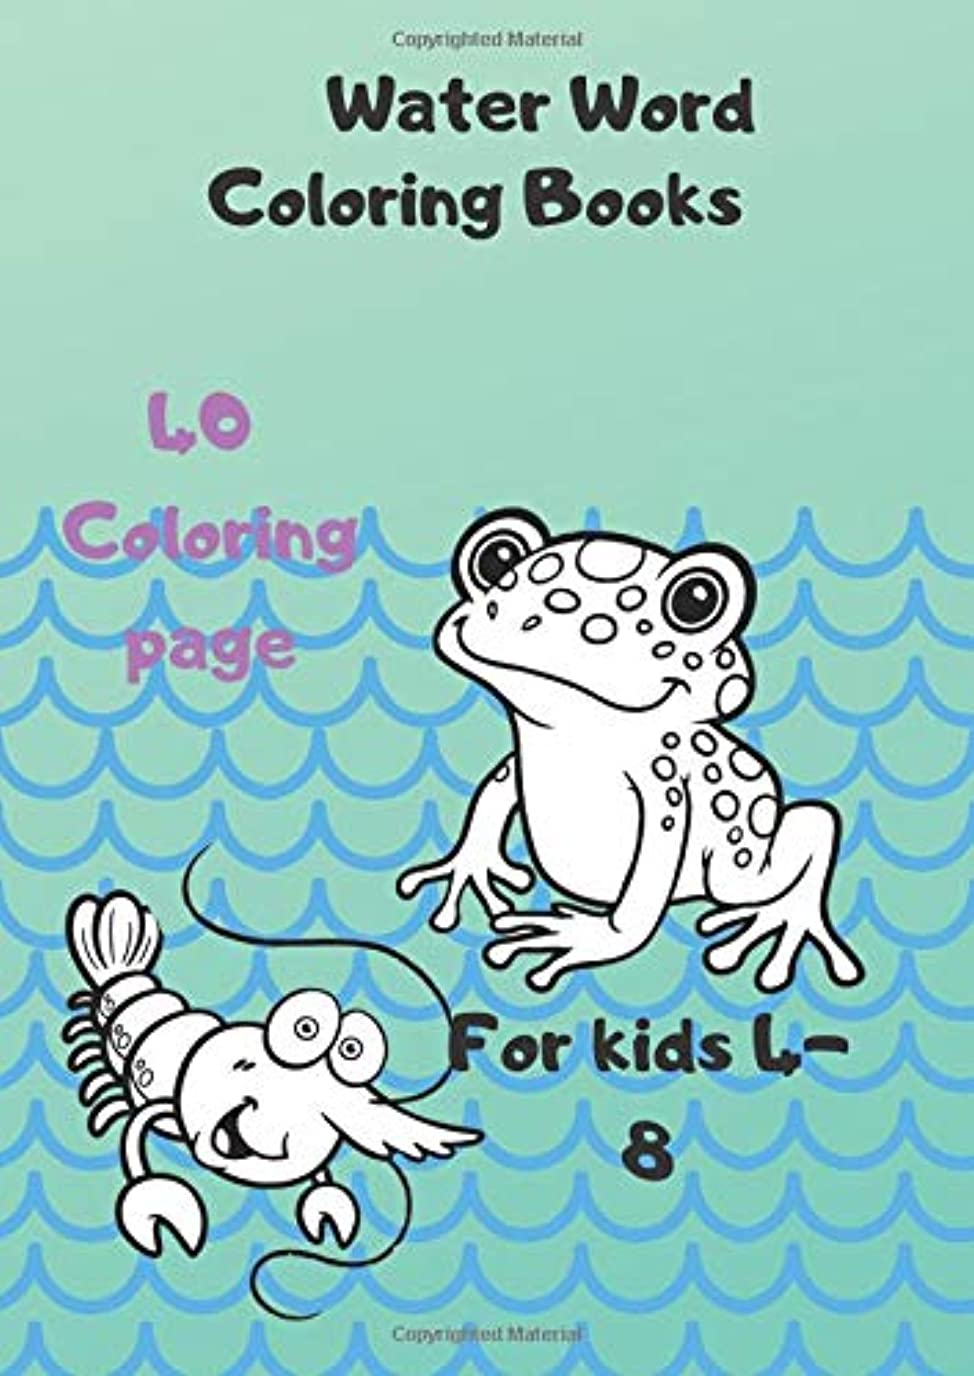 耐えられるバンドル作業Water Word Coloring Books: For kids ages 4-8, 40 Coloring Page, Big Coloring books for small hands 8.27x11,69 IN